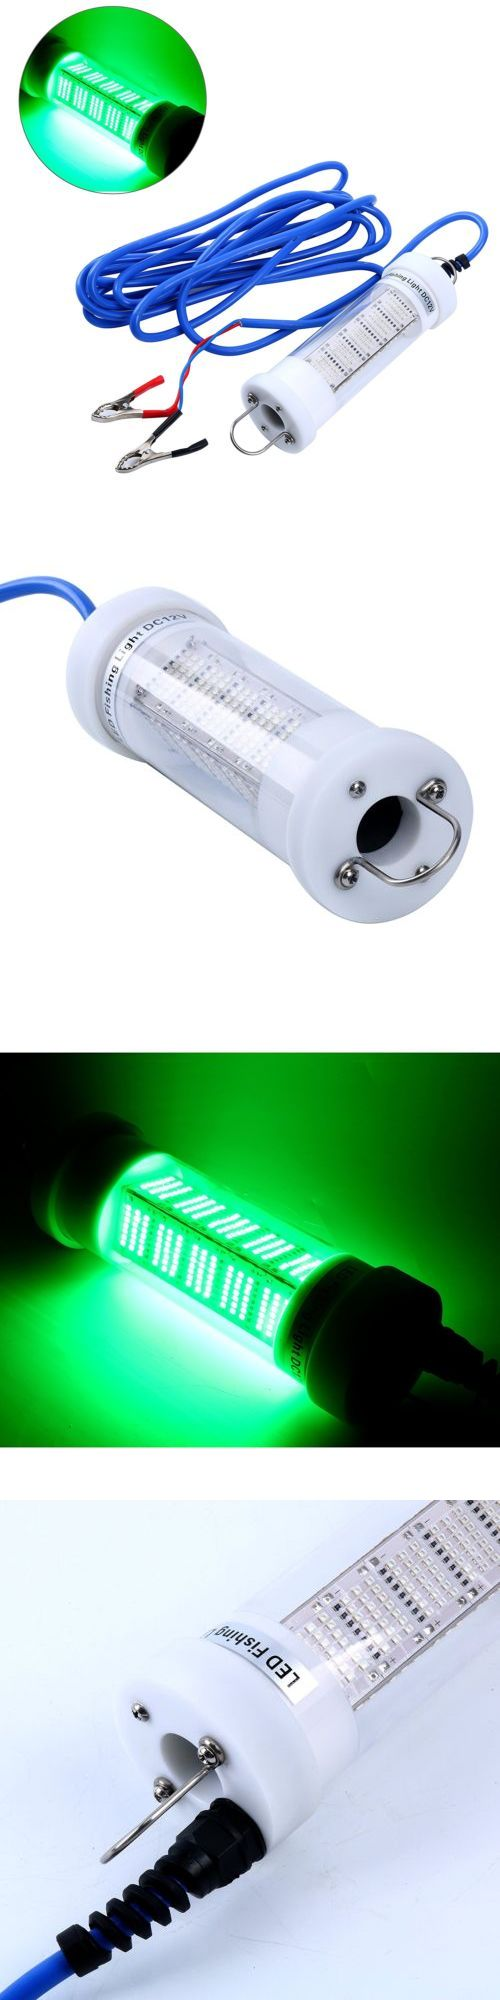 Lights 123489: Yaemarine Green Led 12V 140W Lure Bait Finder Night Fishing Boat Light -> BUY IT NOW ONLY: $158 on eBay!